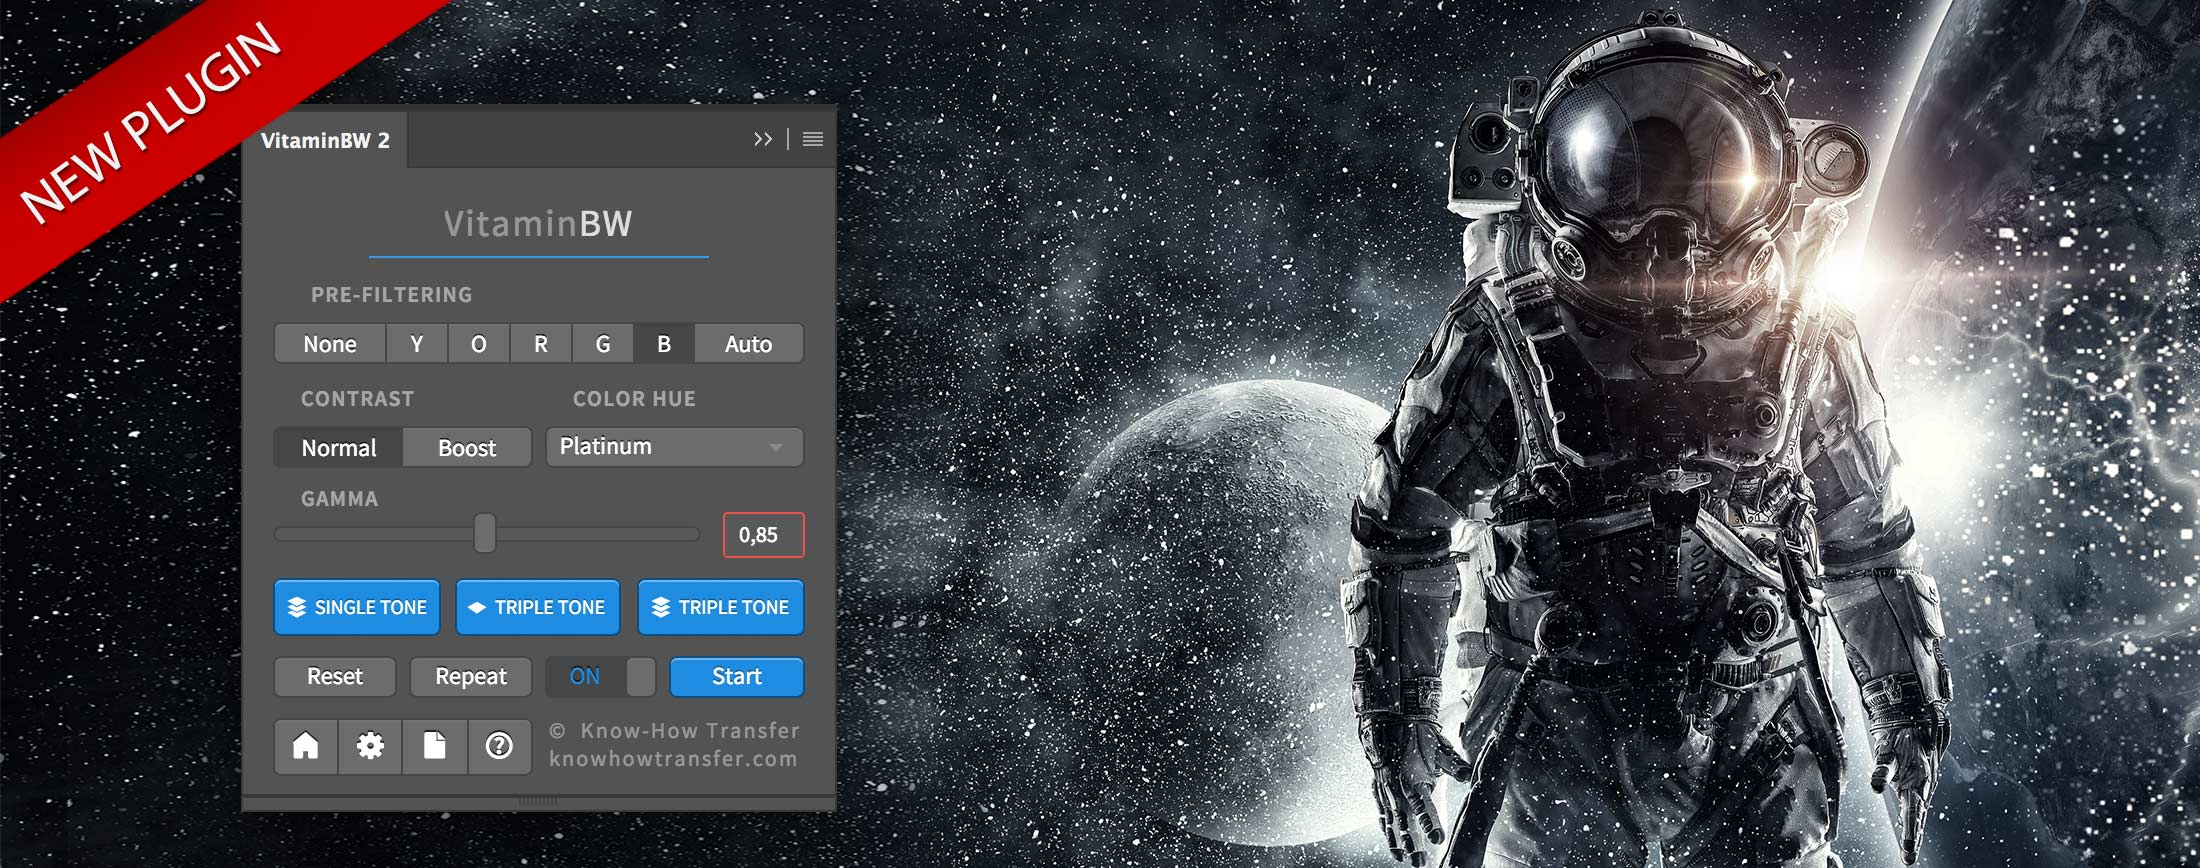 The Panel and a Space Image tuned with the new VitaminBW 2 Black&White Converter